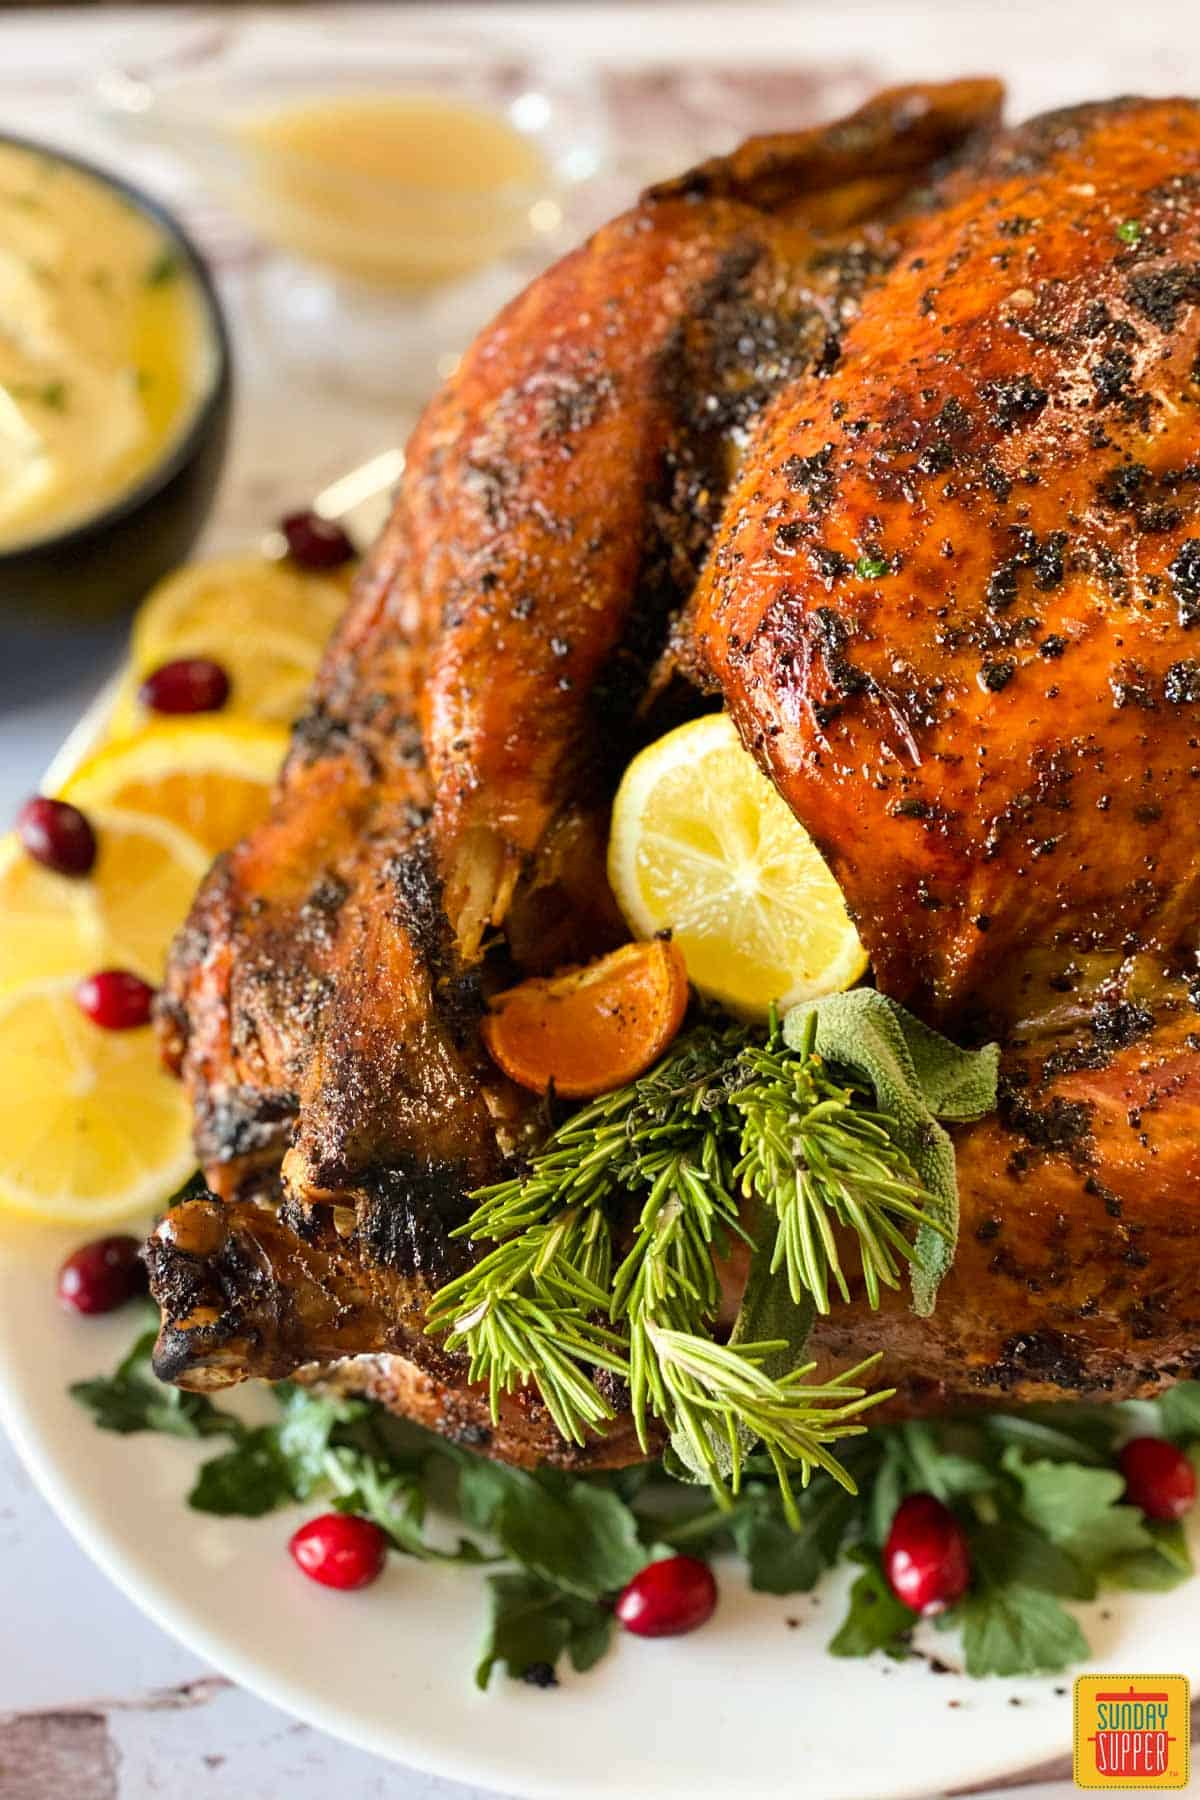 Close up of a grilled turkey on a platter stuffed with citrus and herbs